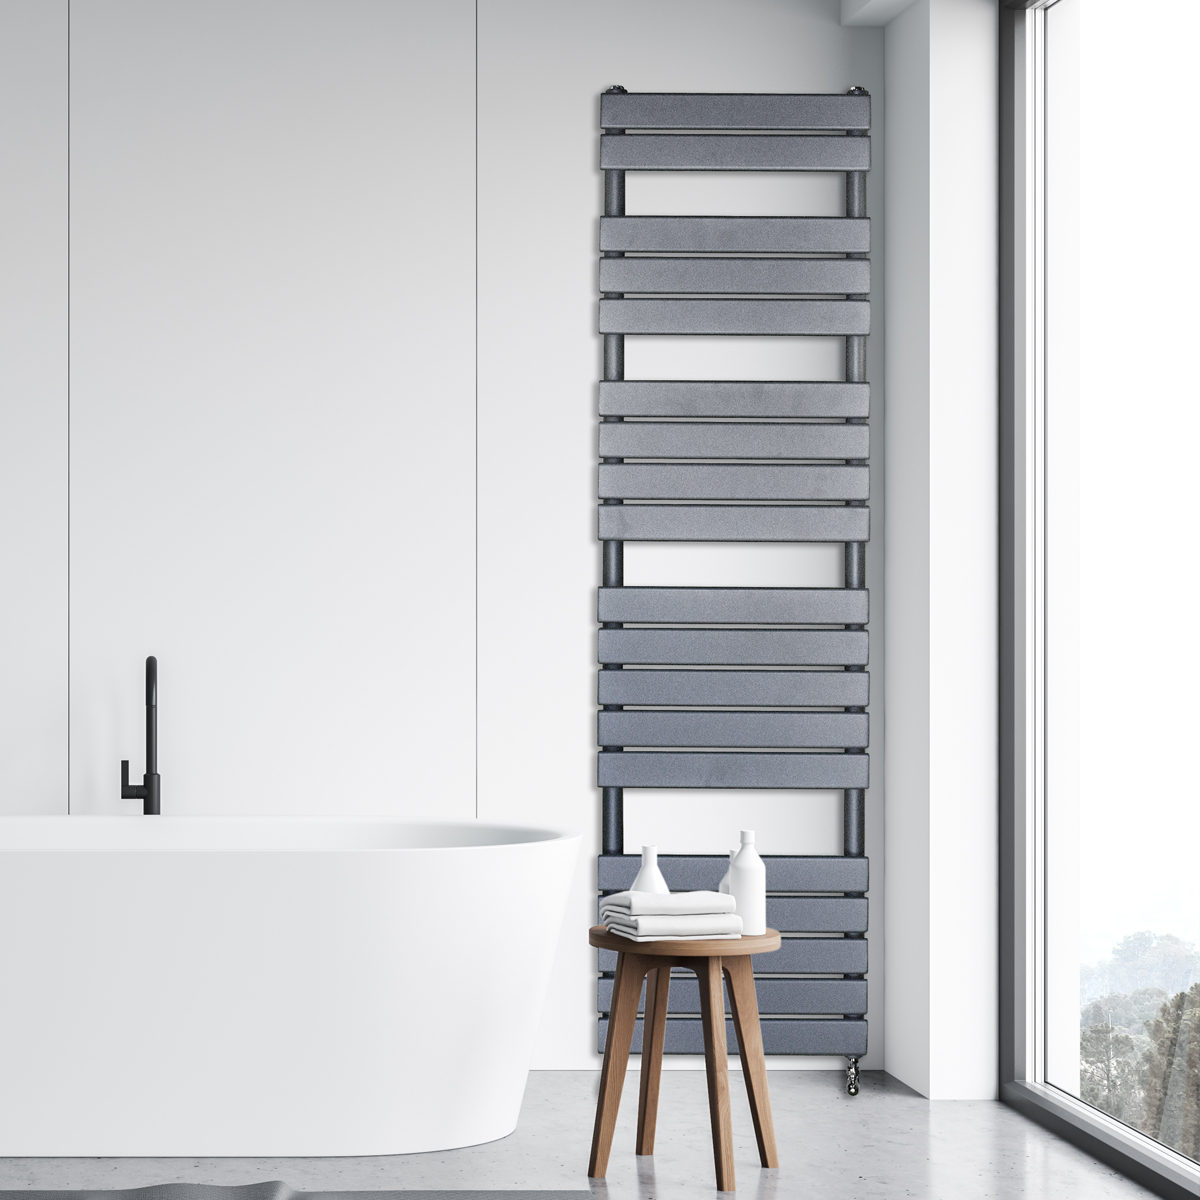 grey adige designer towel radiator 19 panels.jpg